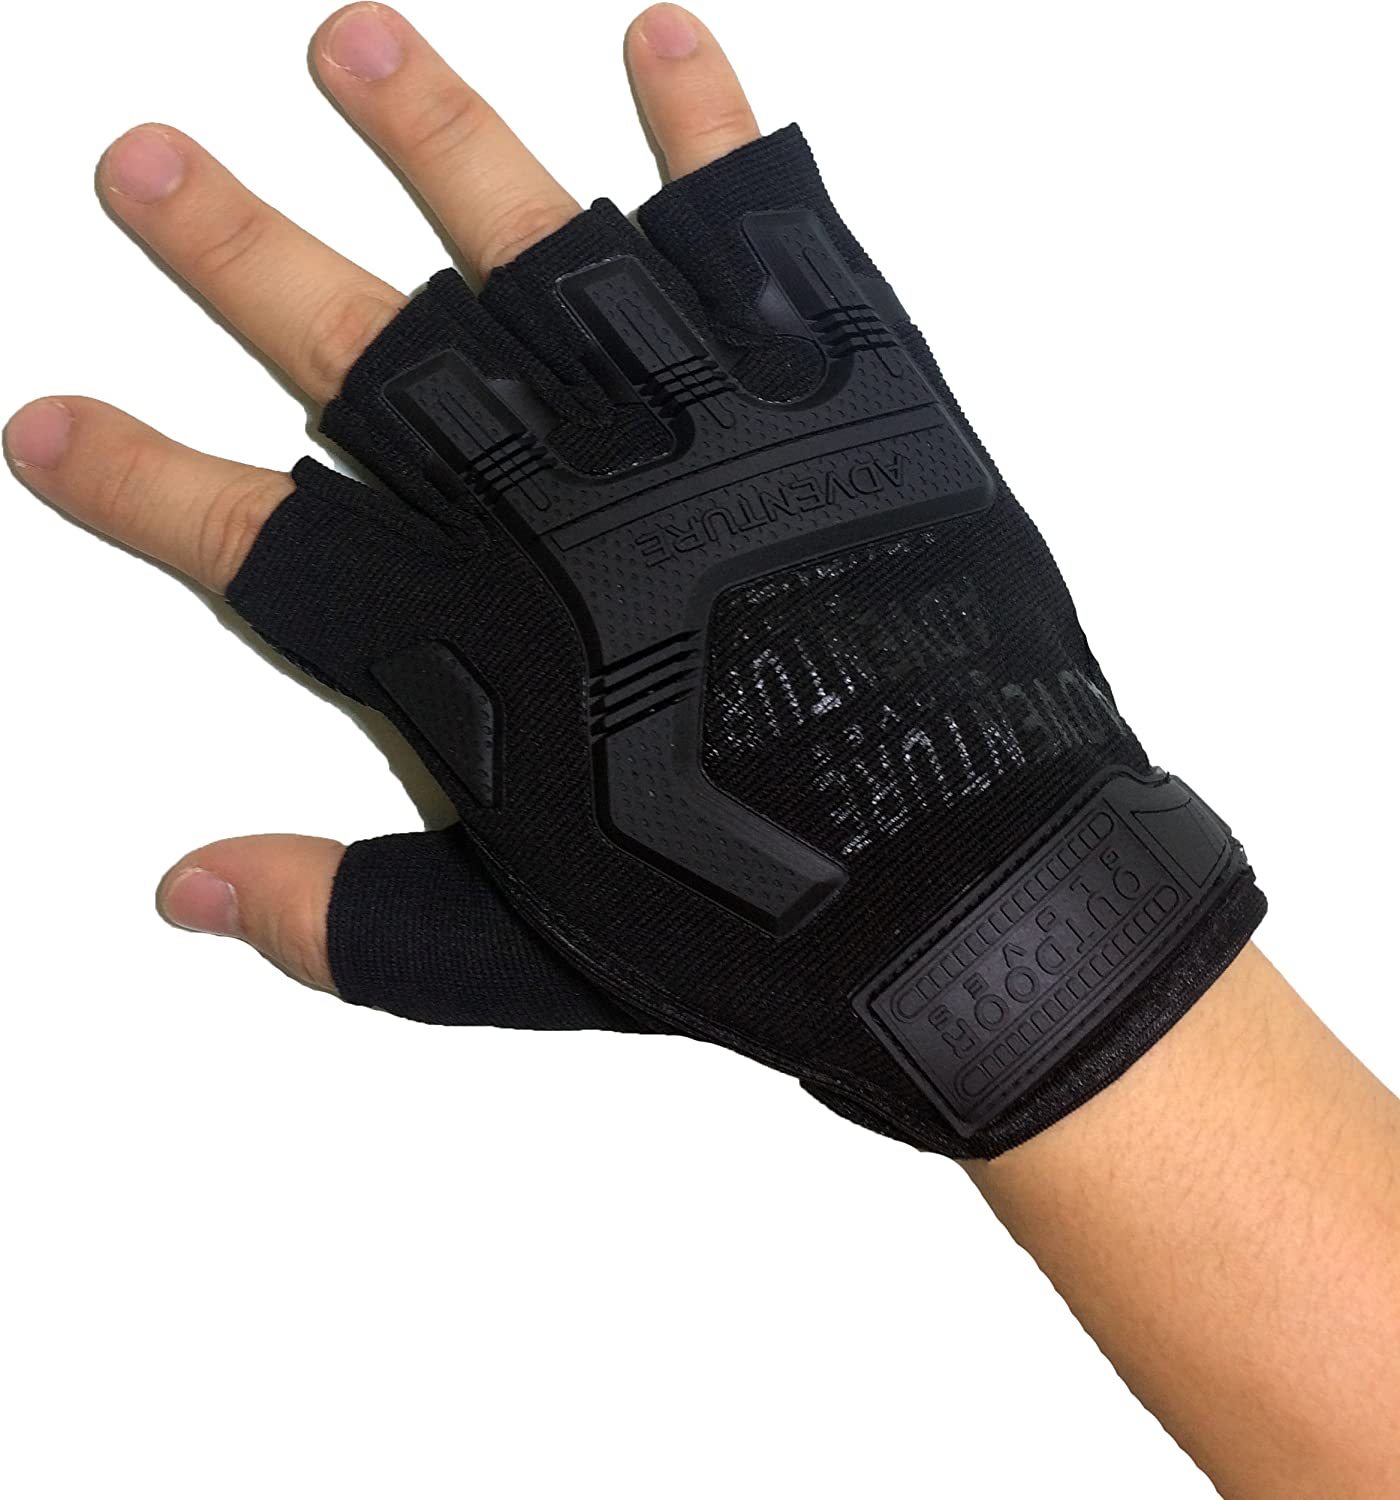 Ranger Return Tactical Half Finger Fingerless Light Assault Gloves Protection Riding Fitness Working Cycling Outdoor Sports Athletic Biking